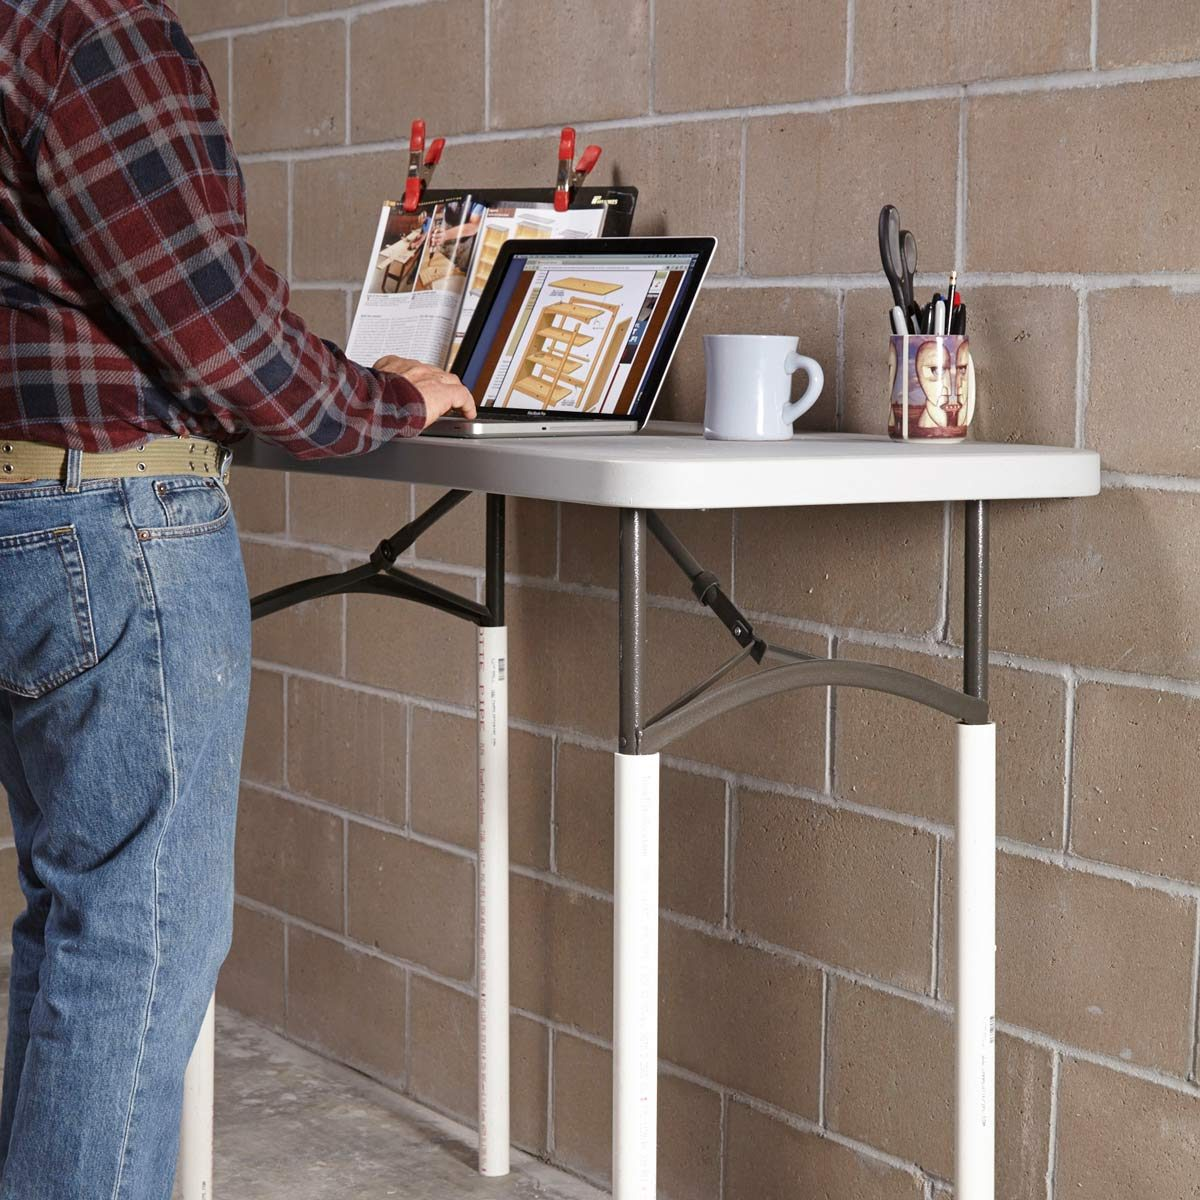 PVC Hack: Adjustable Table Height